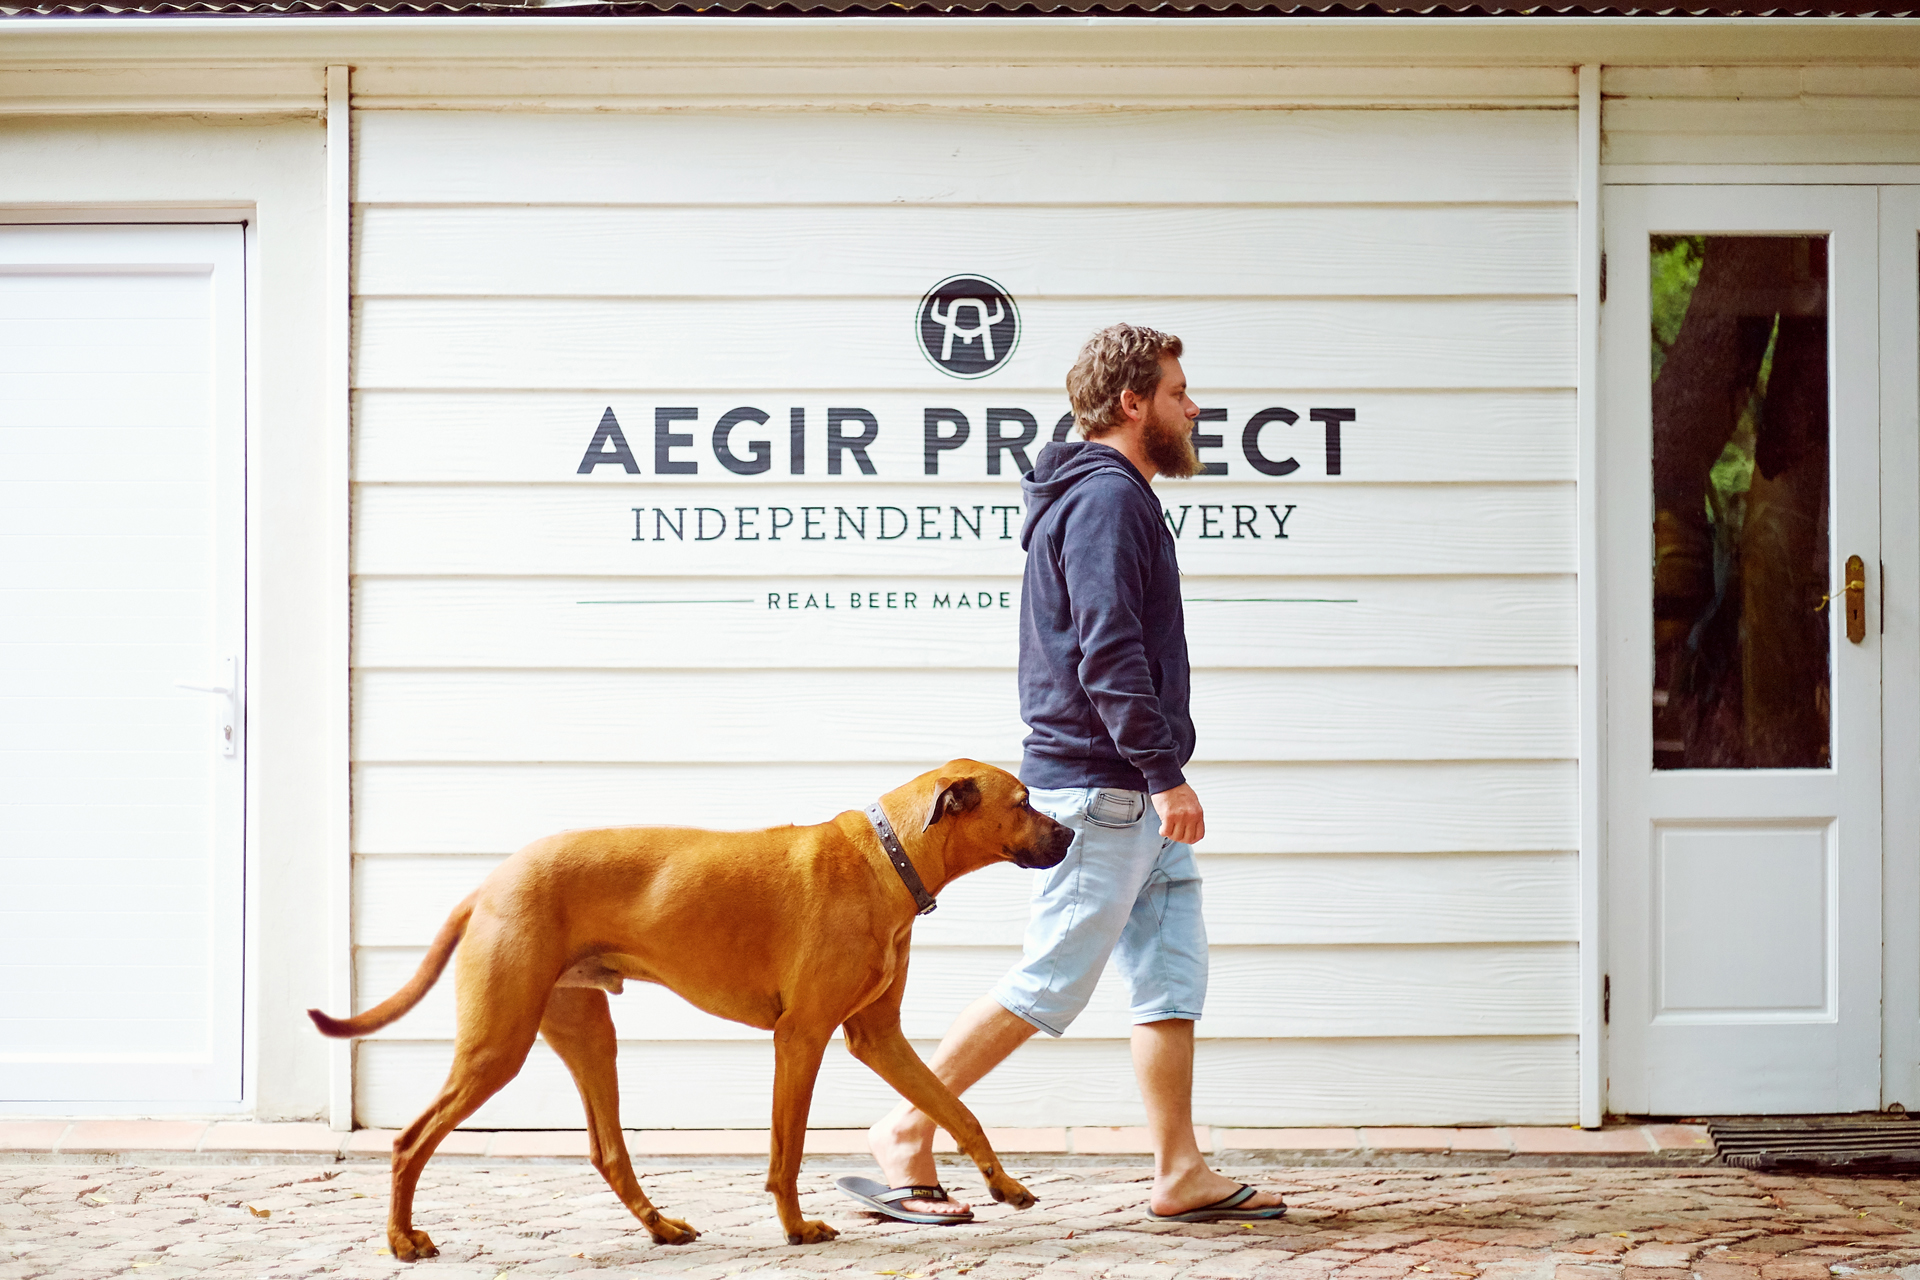 Aegir-Project-Brewery